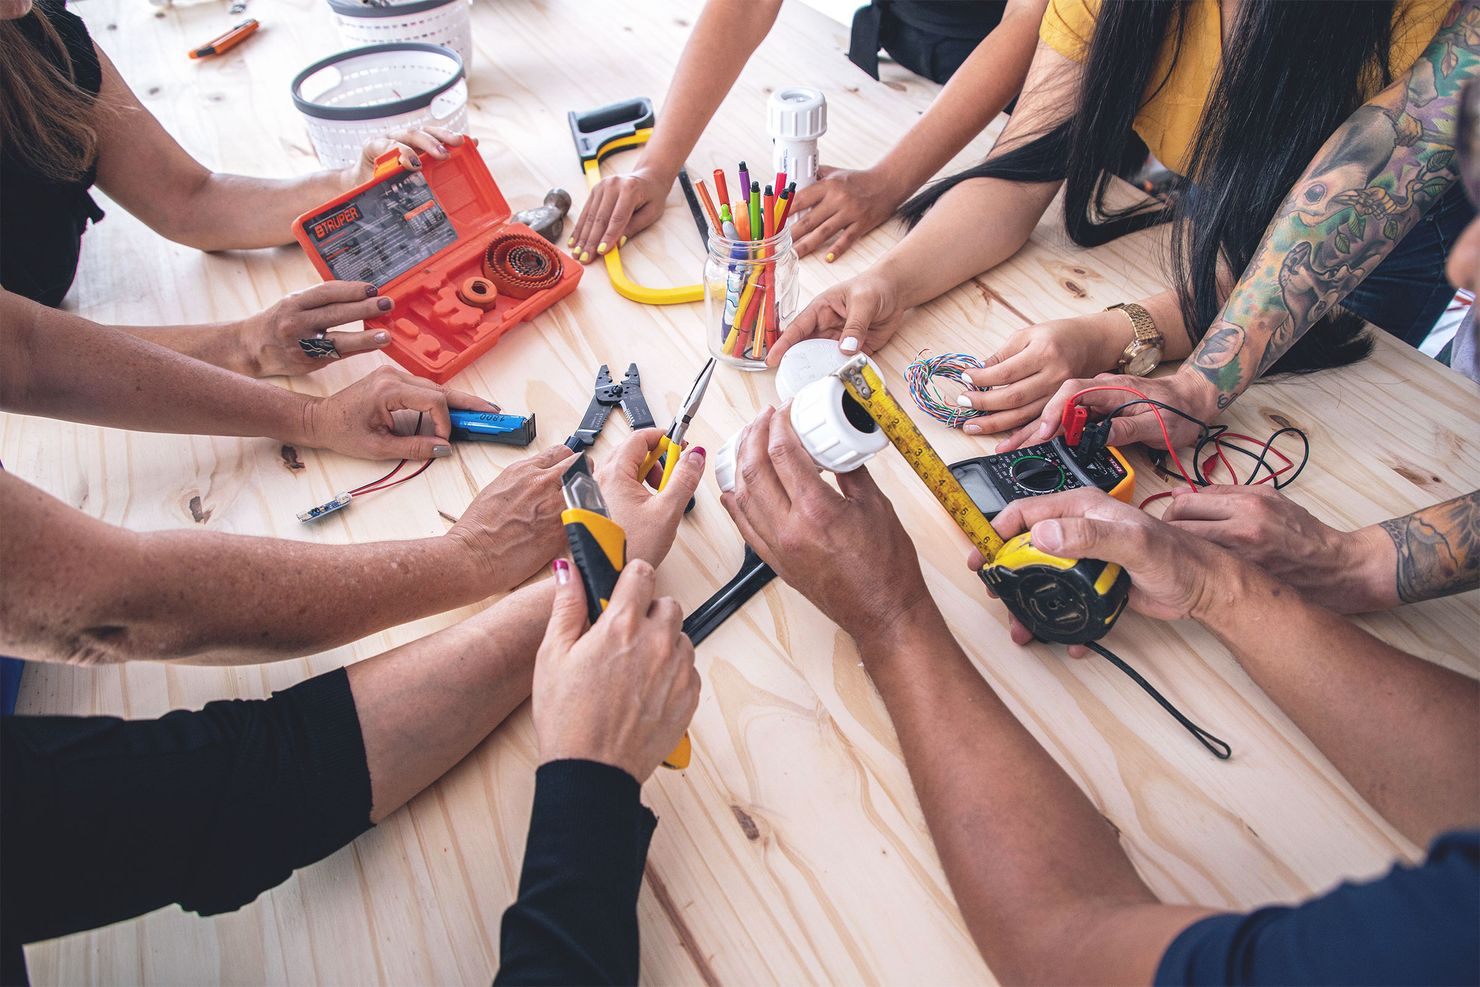 an over-the-shoulder view of the arms and hands of seven onsite workshop participants holding a variety of tools over a wooden workbench